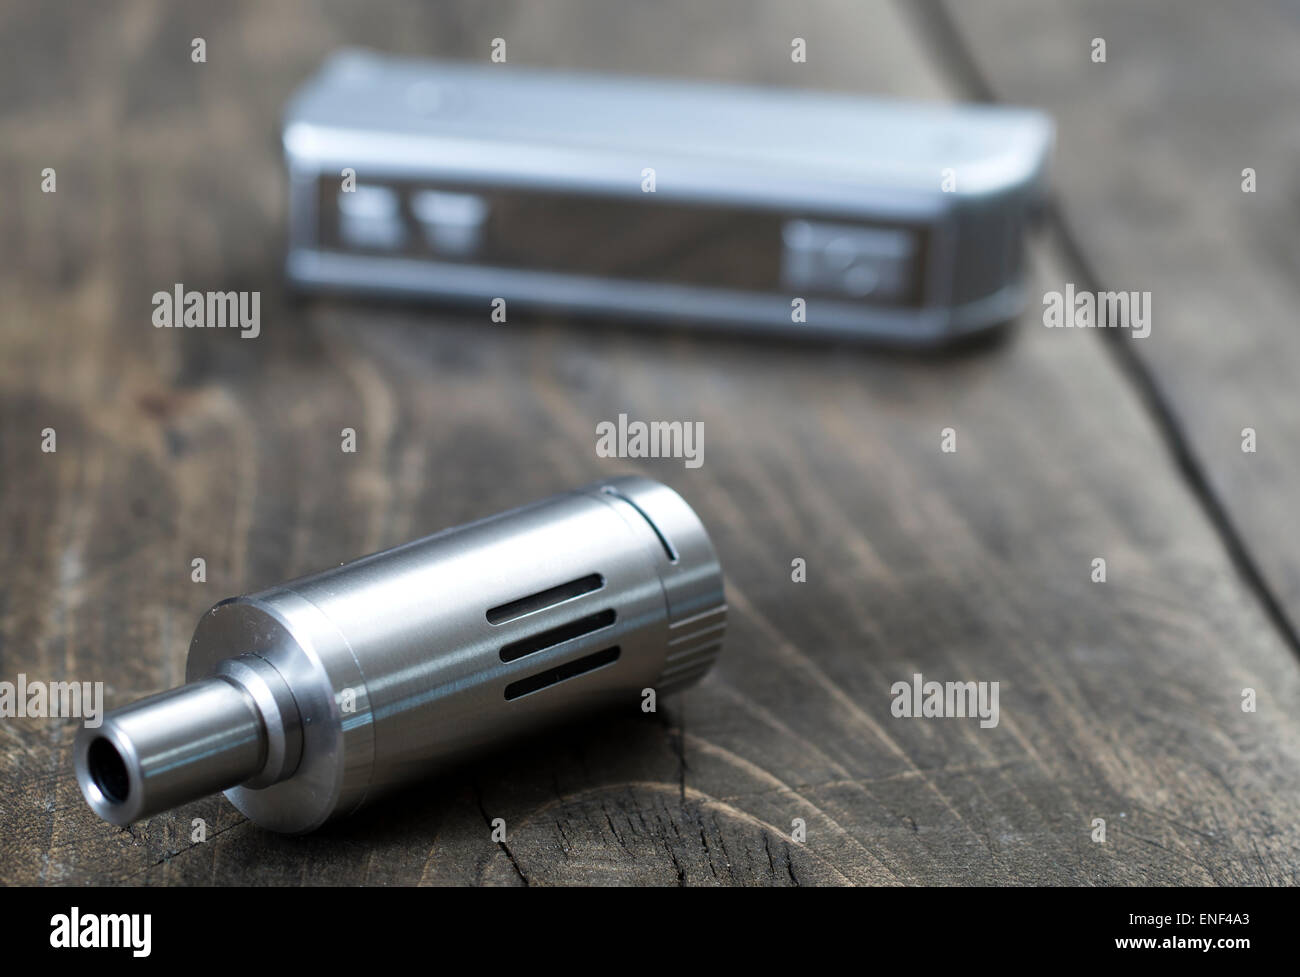 electronic cigarette on old wooden table, close up - Stock Image